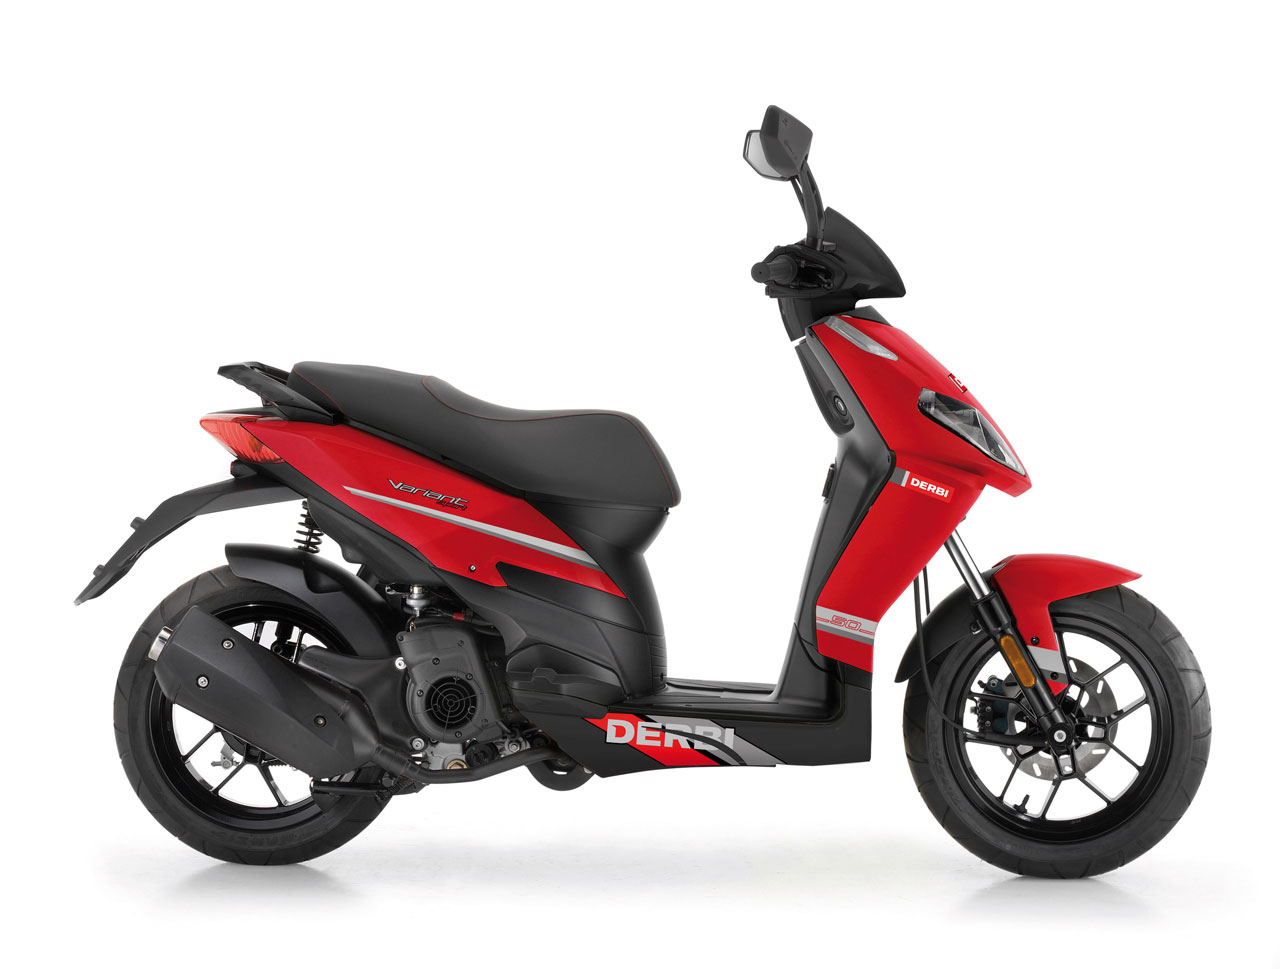 derbi variant sport 125 cc scooterfun rentals your scooter rental company kalymnos greece. Black Bedroom Furniture Sets. Home Design Ideas